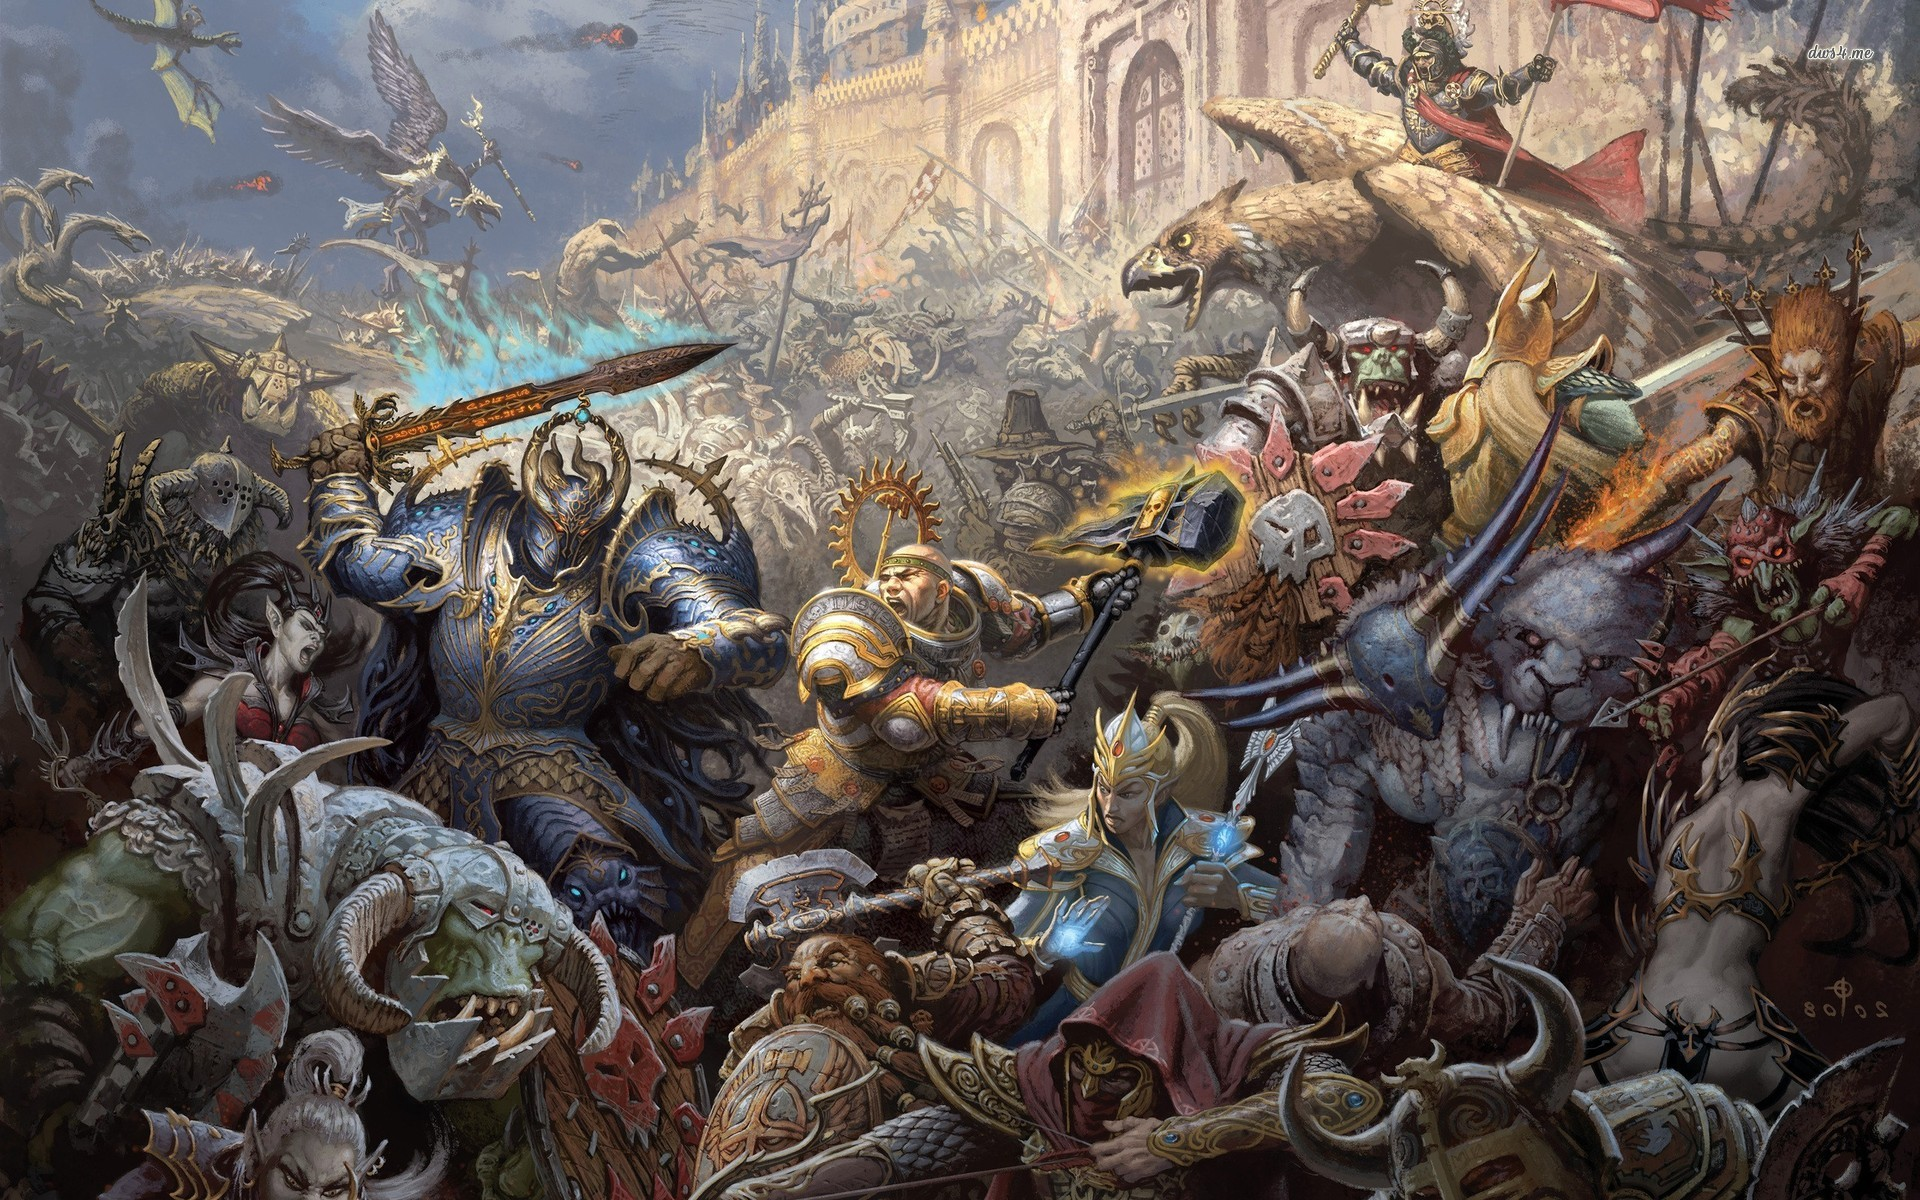 Warhammer online wallpapers pictures images - Fantasy game wallpaper ...